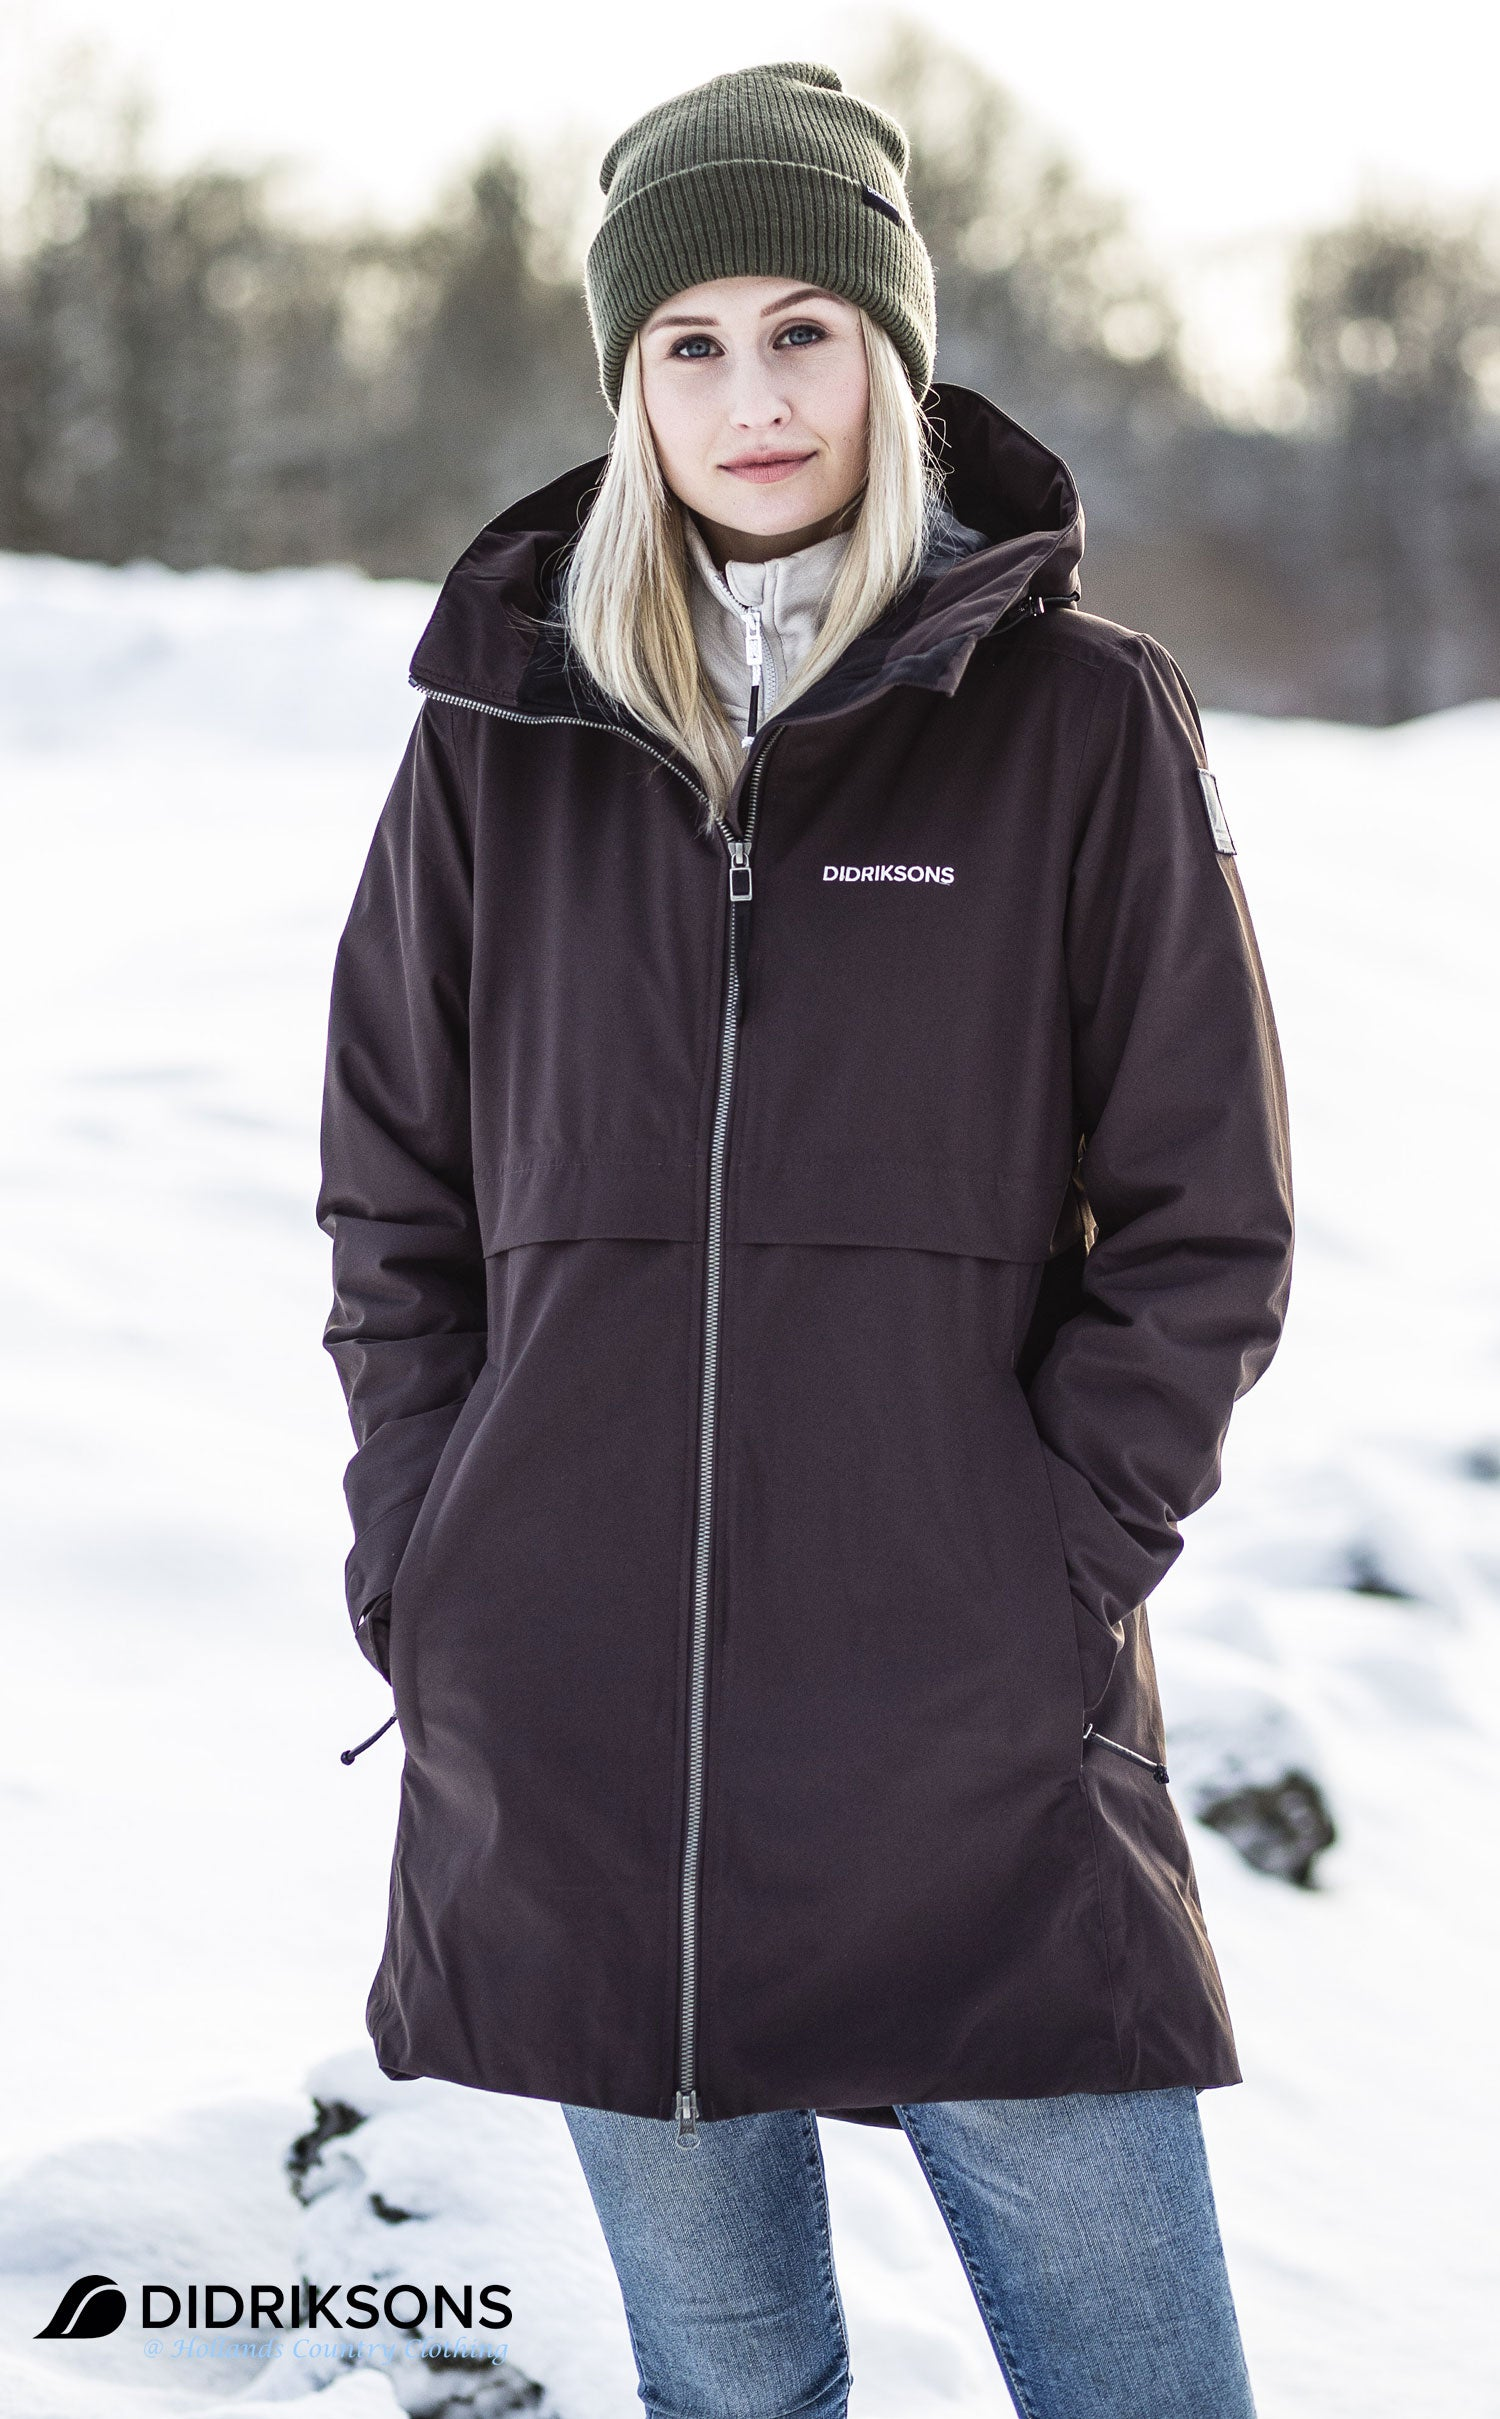 woman wearin women's waterproof Parka by Didriksons - Scandinavia's leading outdoor clothing specialists is a stylish 3/4 length